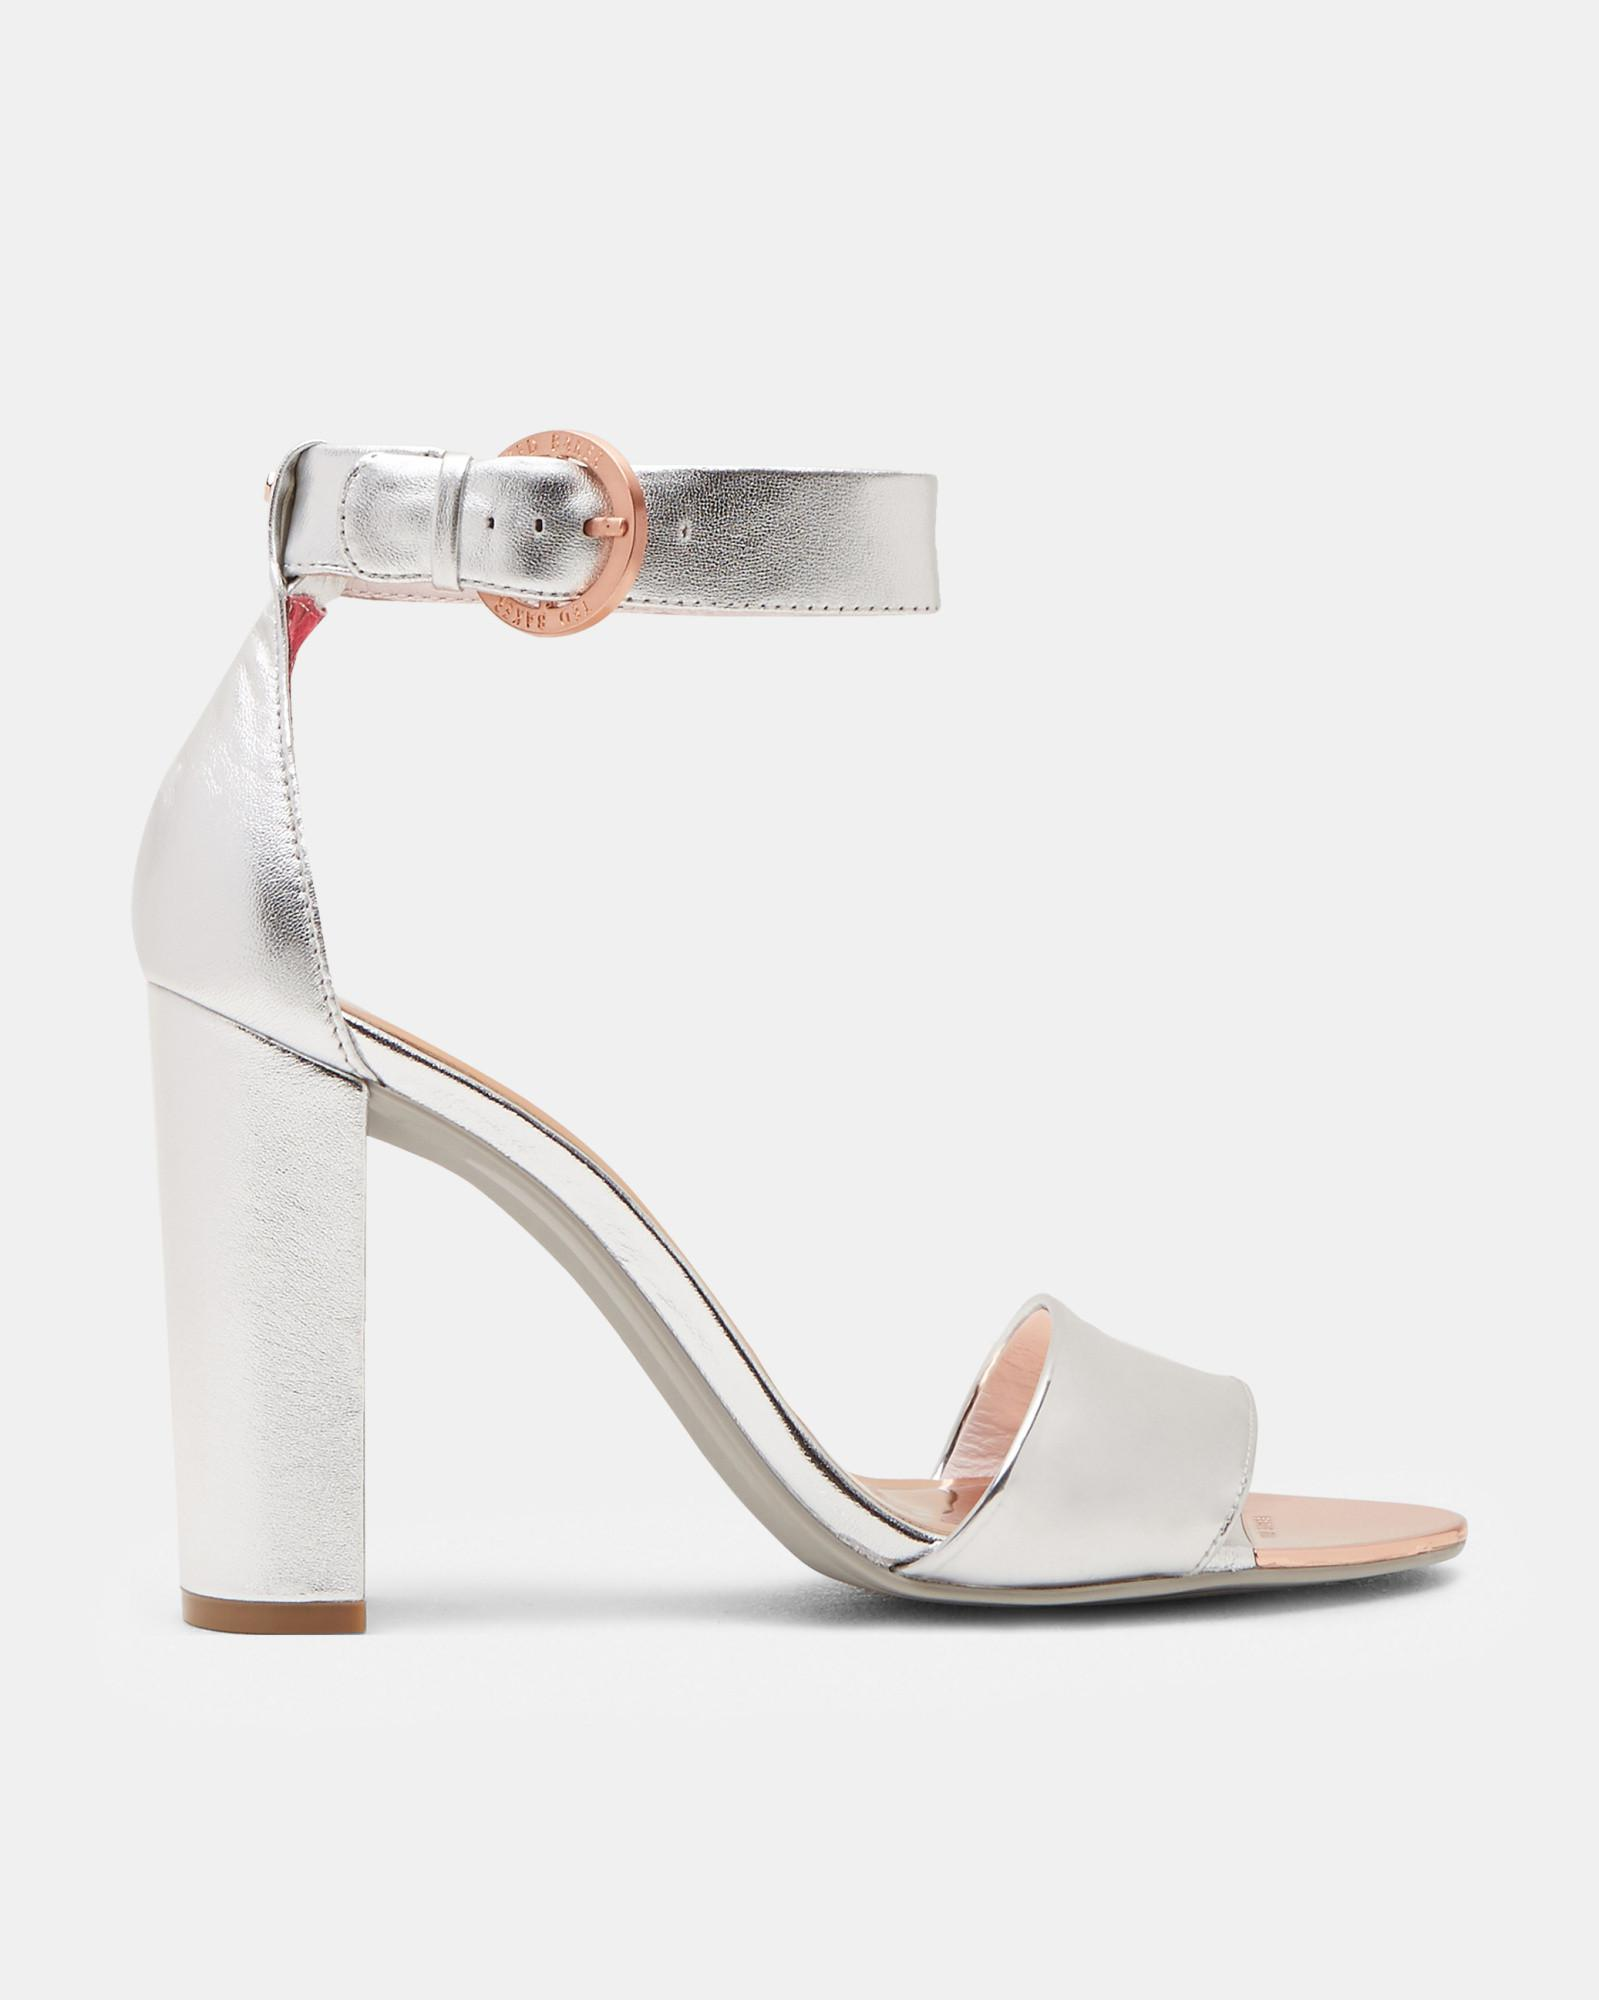 aacd91b4726 Ted Baker Ankle Strap Sandals - Lyst